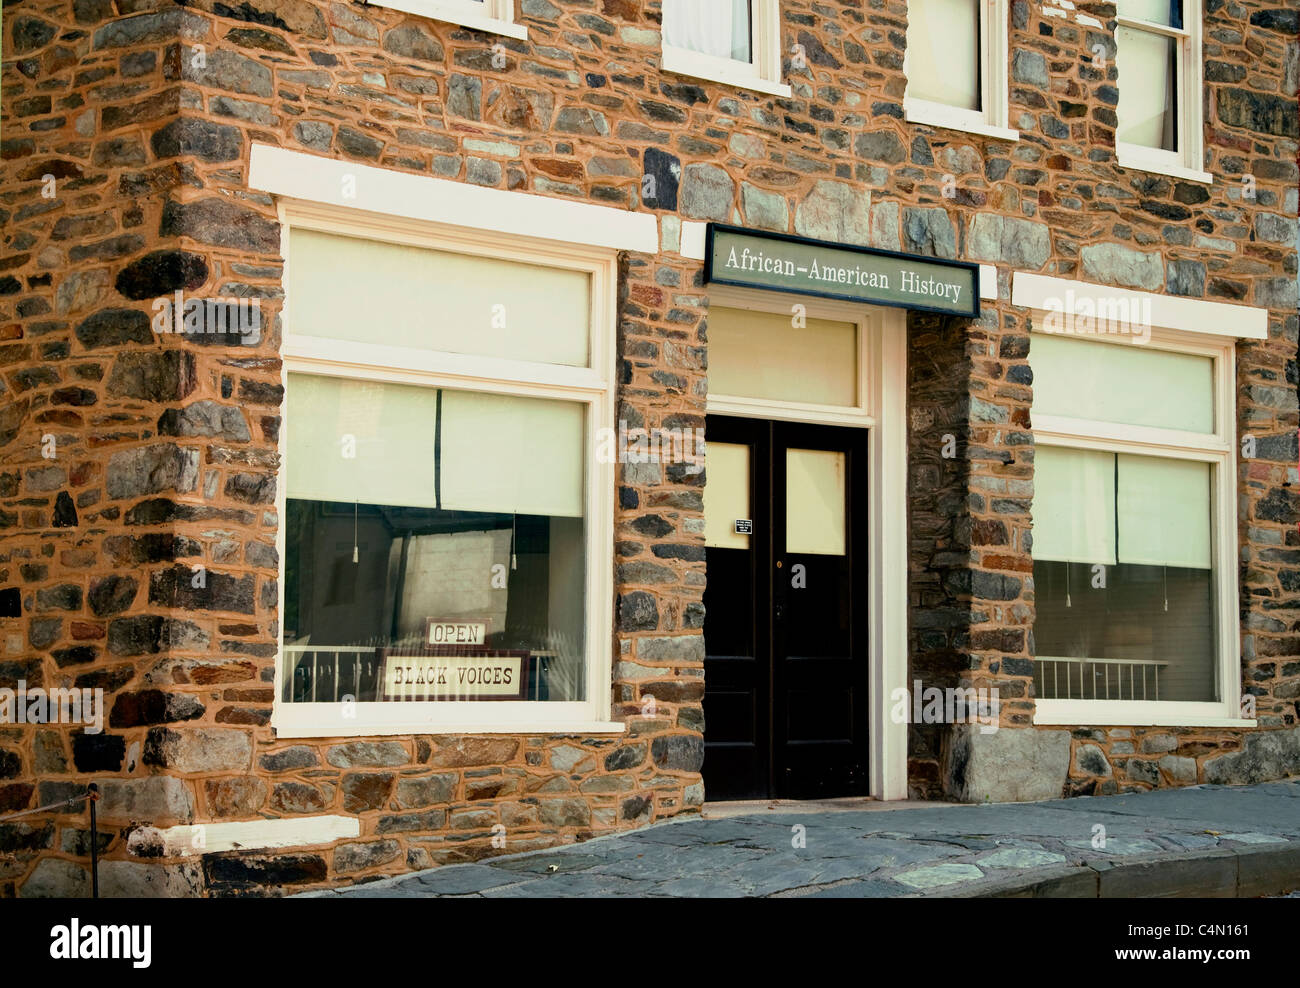 The African-American History Museum, Harpers Ferry, West Virginia - Stock Image